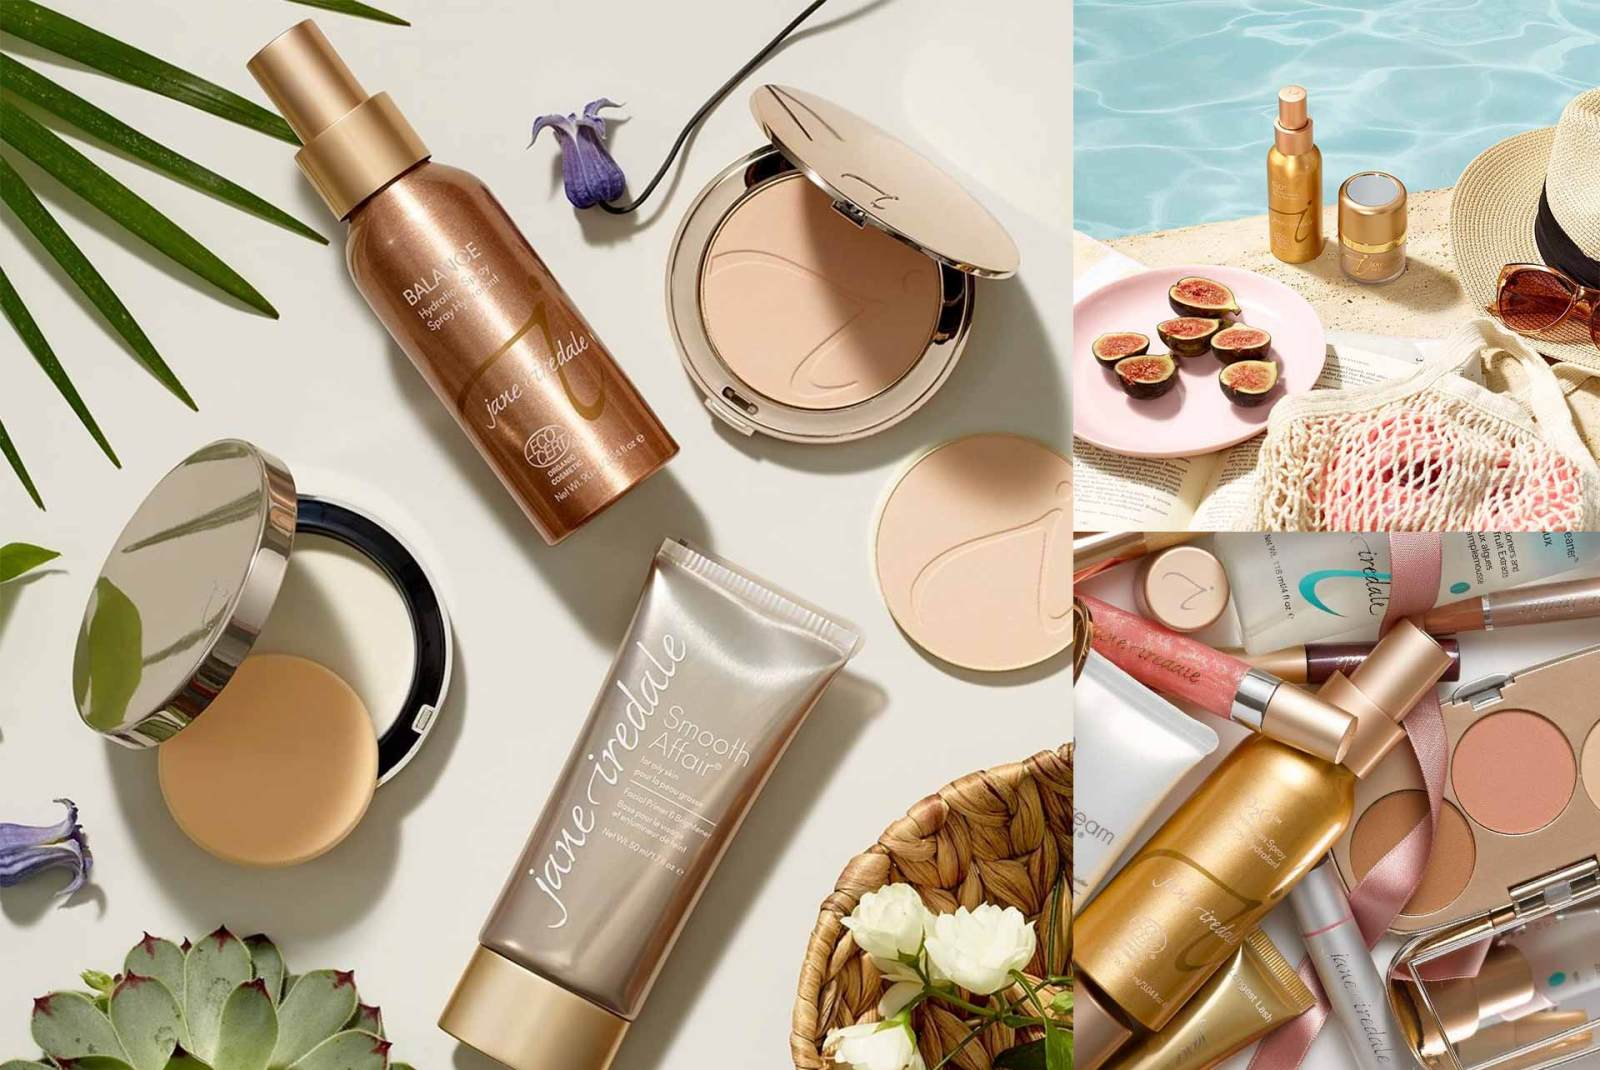 Is Jane Iredale Cruelty-Free & Vegan?